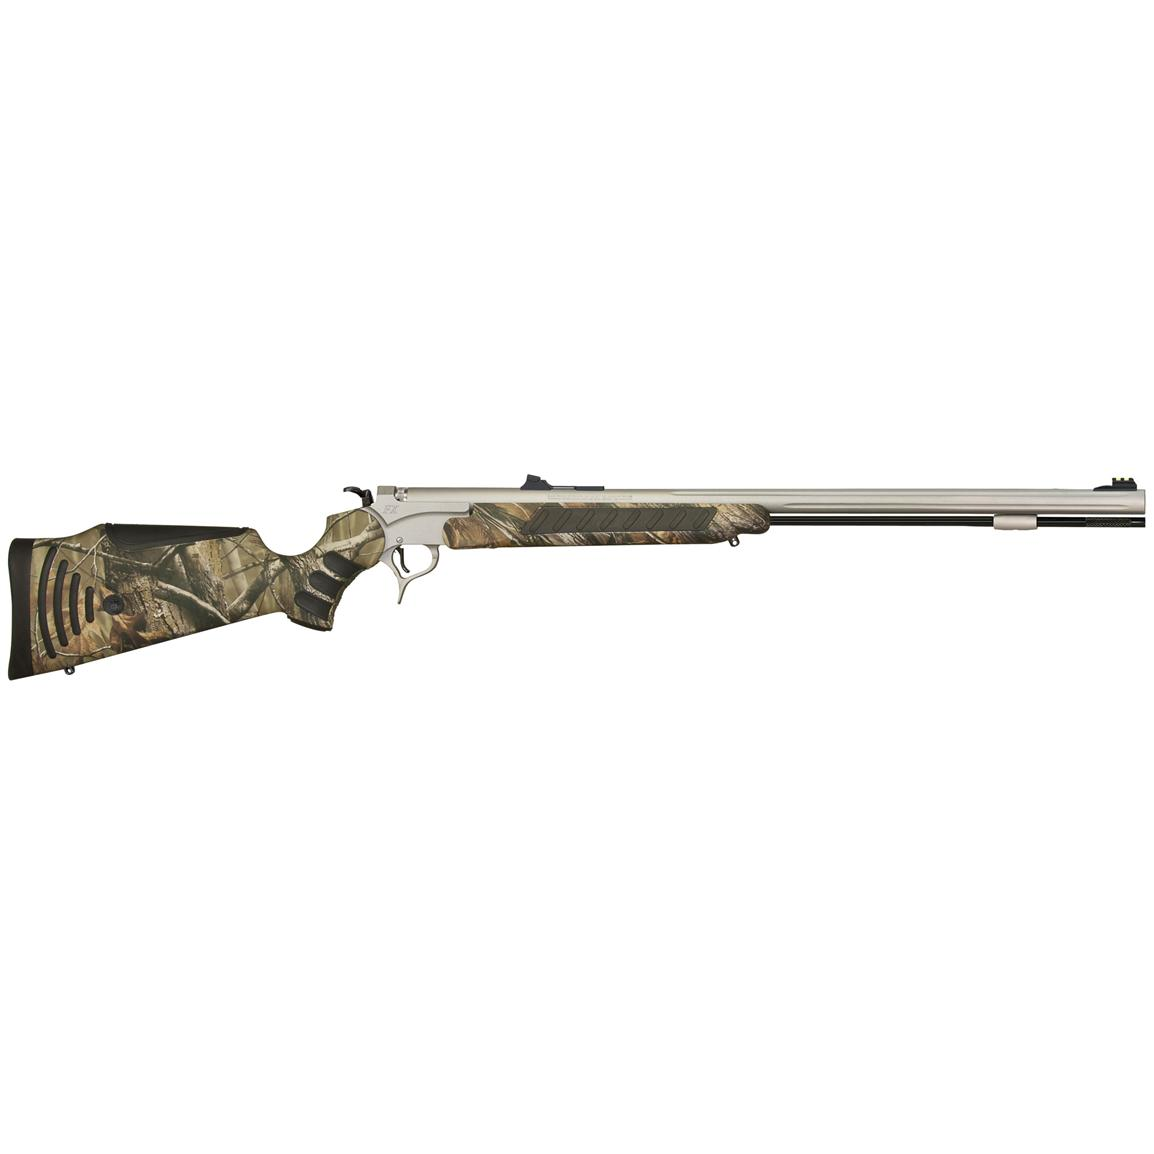 Thompson / Center Pro Hunter FX Muzzleloader, Realtree AP Camo / Stainless Steel